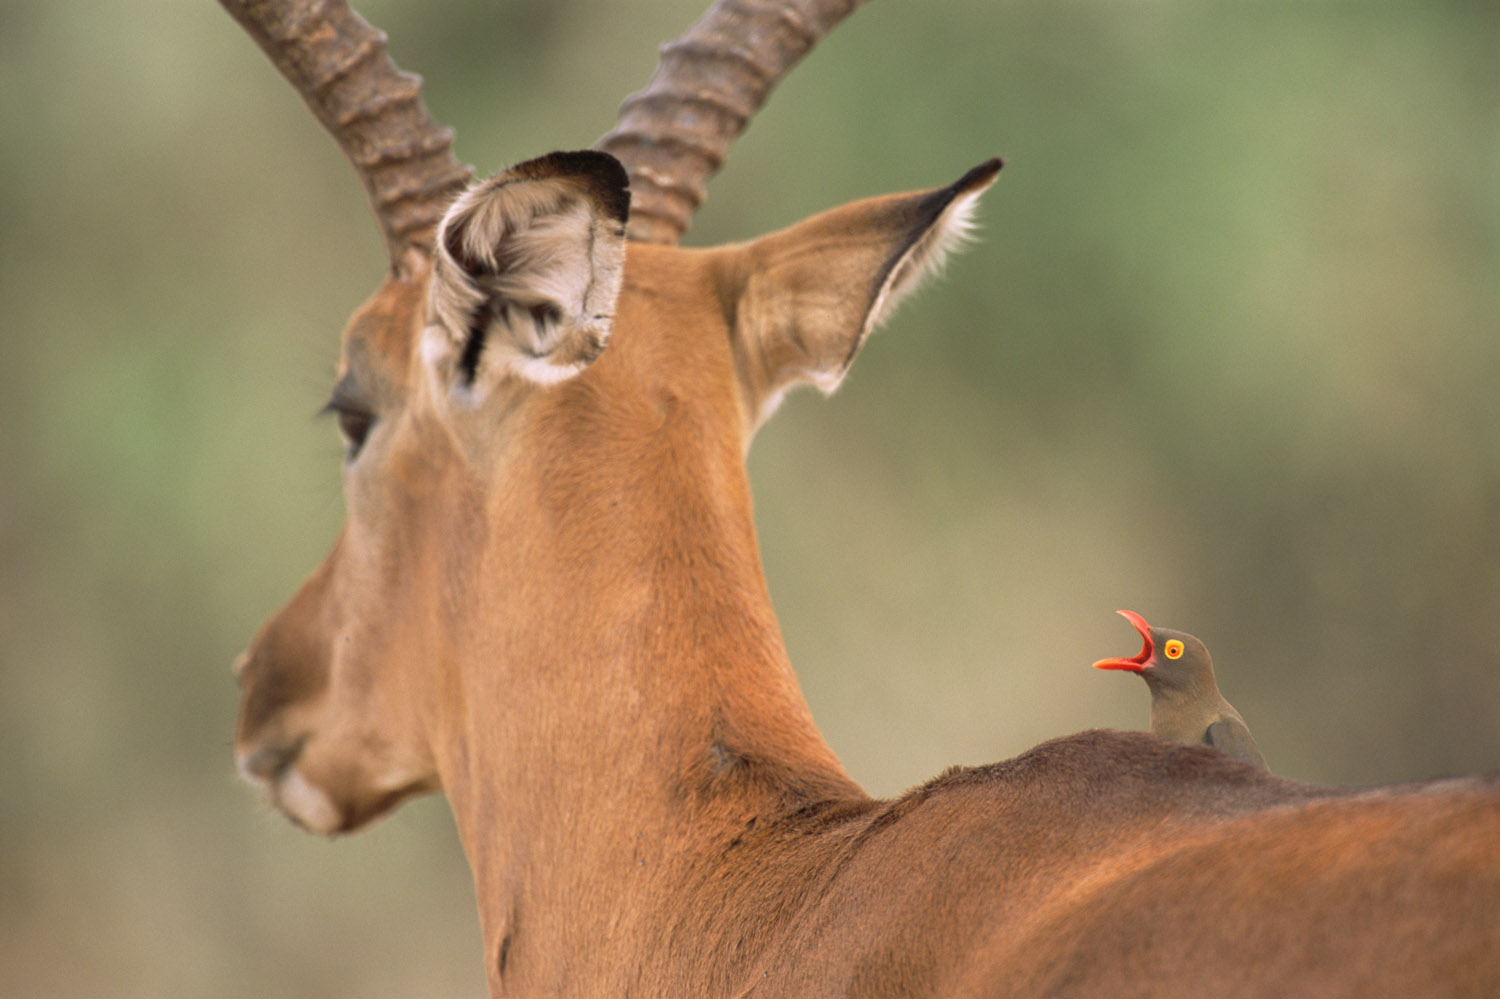 Red-billed oxpecker calling on impala, Samburu National Reserve, Kenya